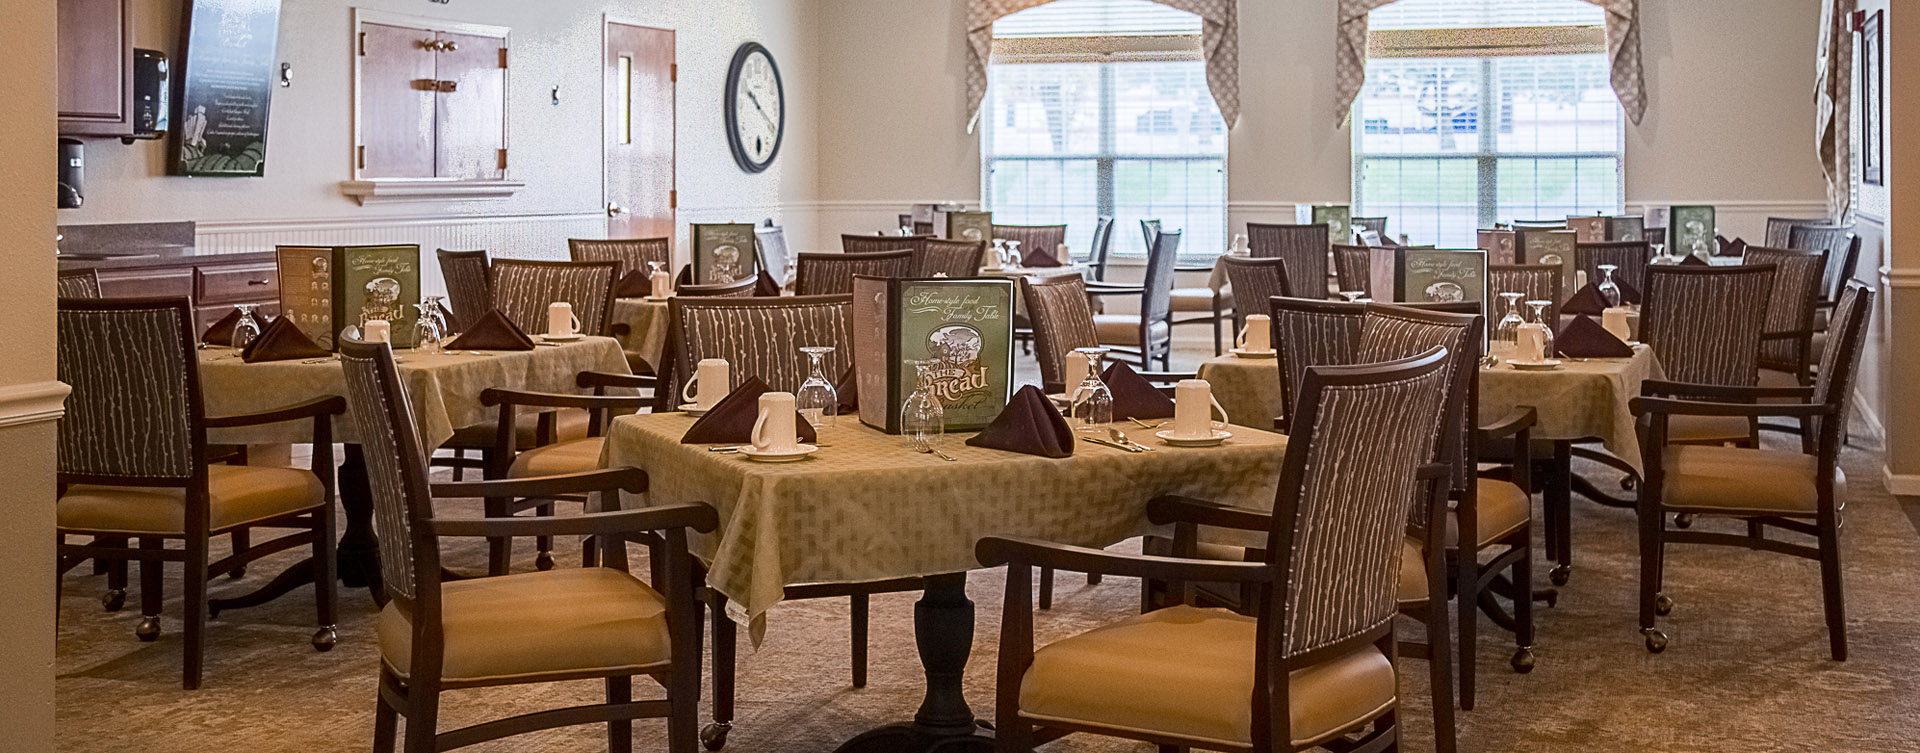 Food is best when shared with friends in the dining room at Bickford of Davenport